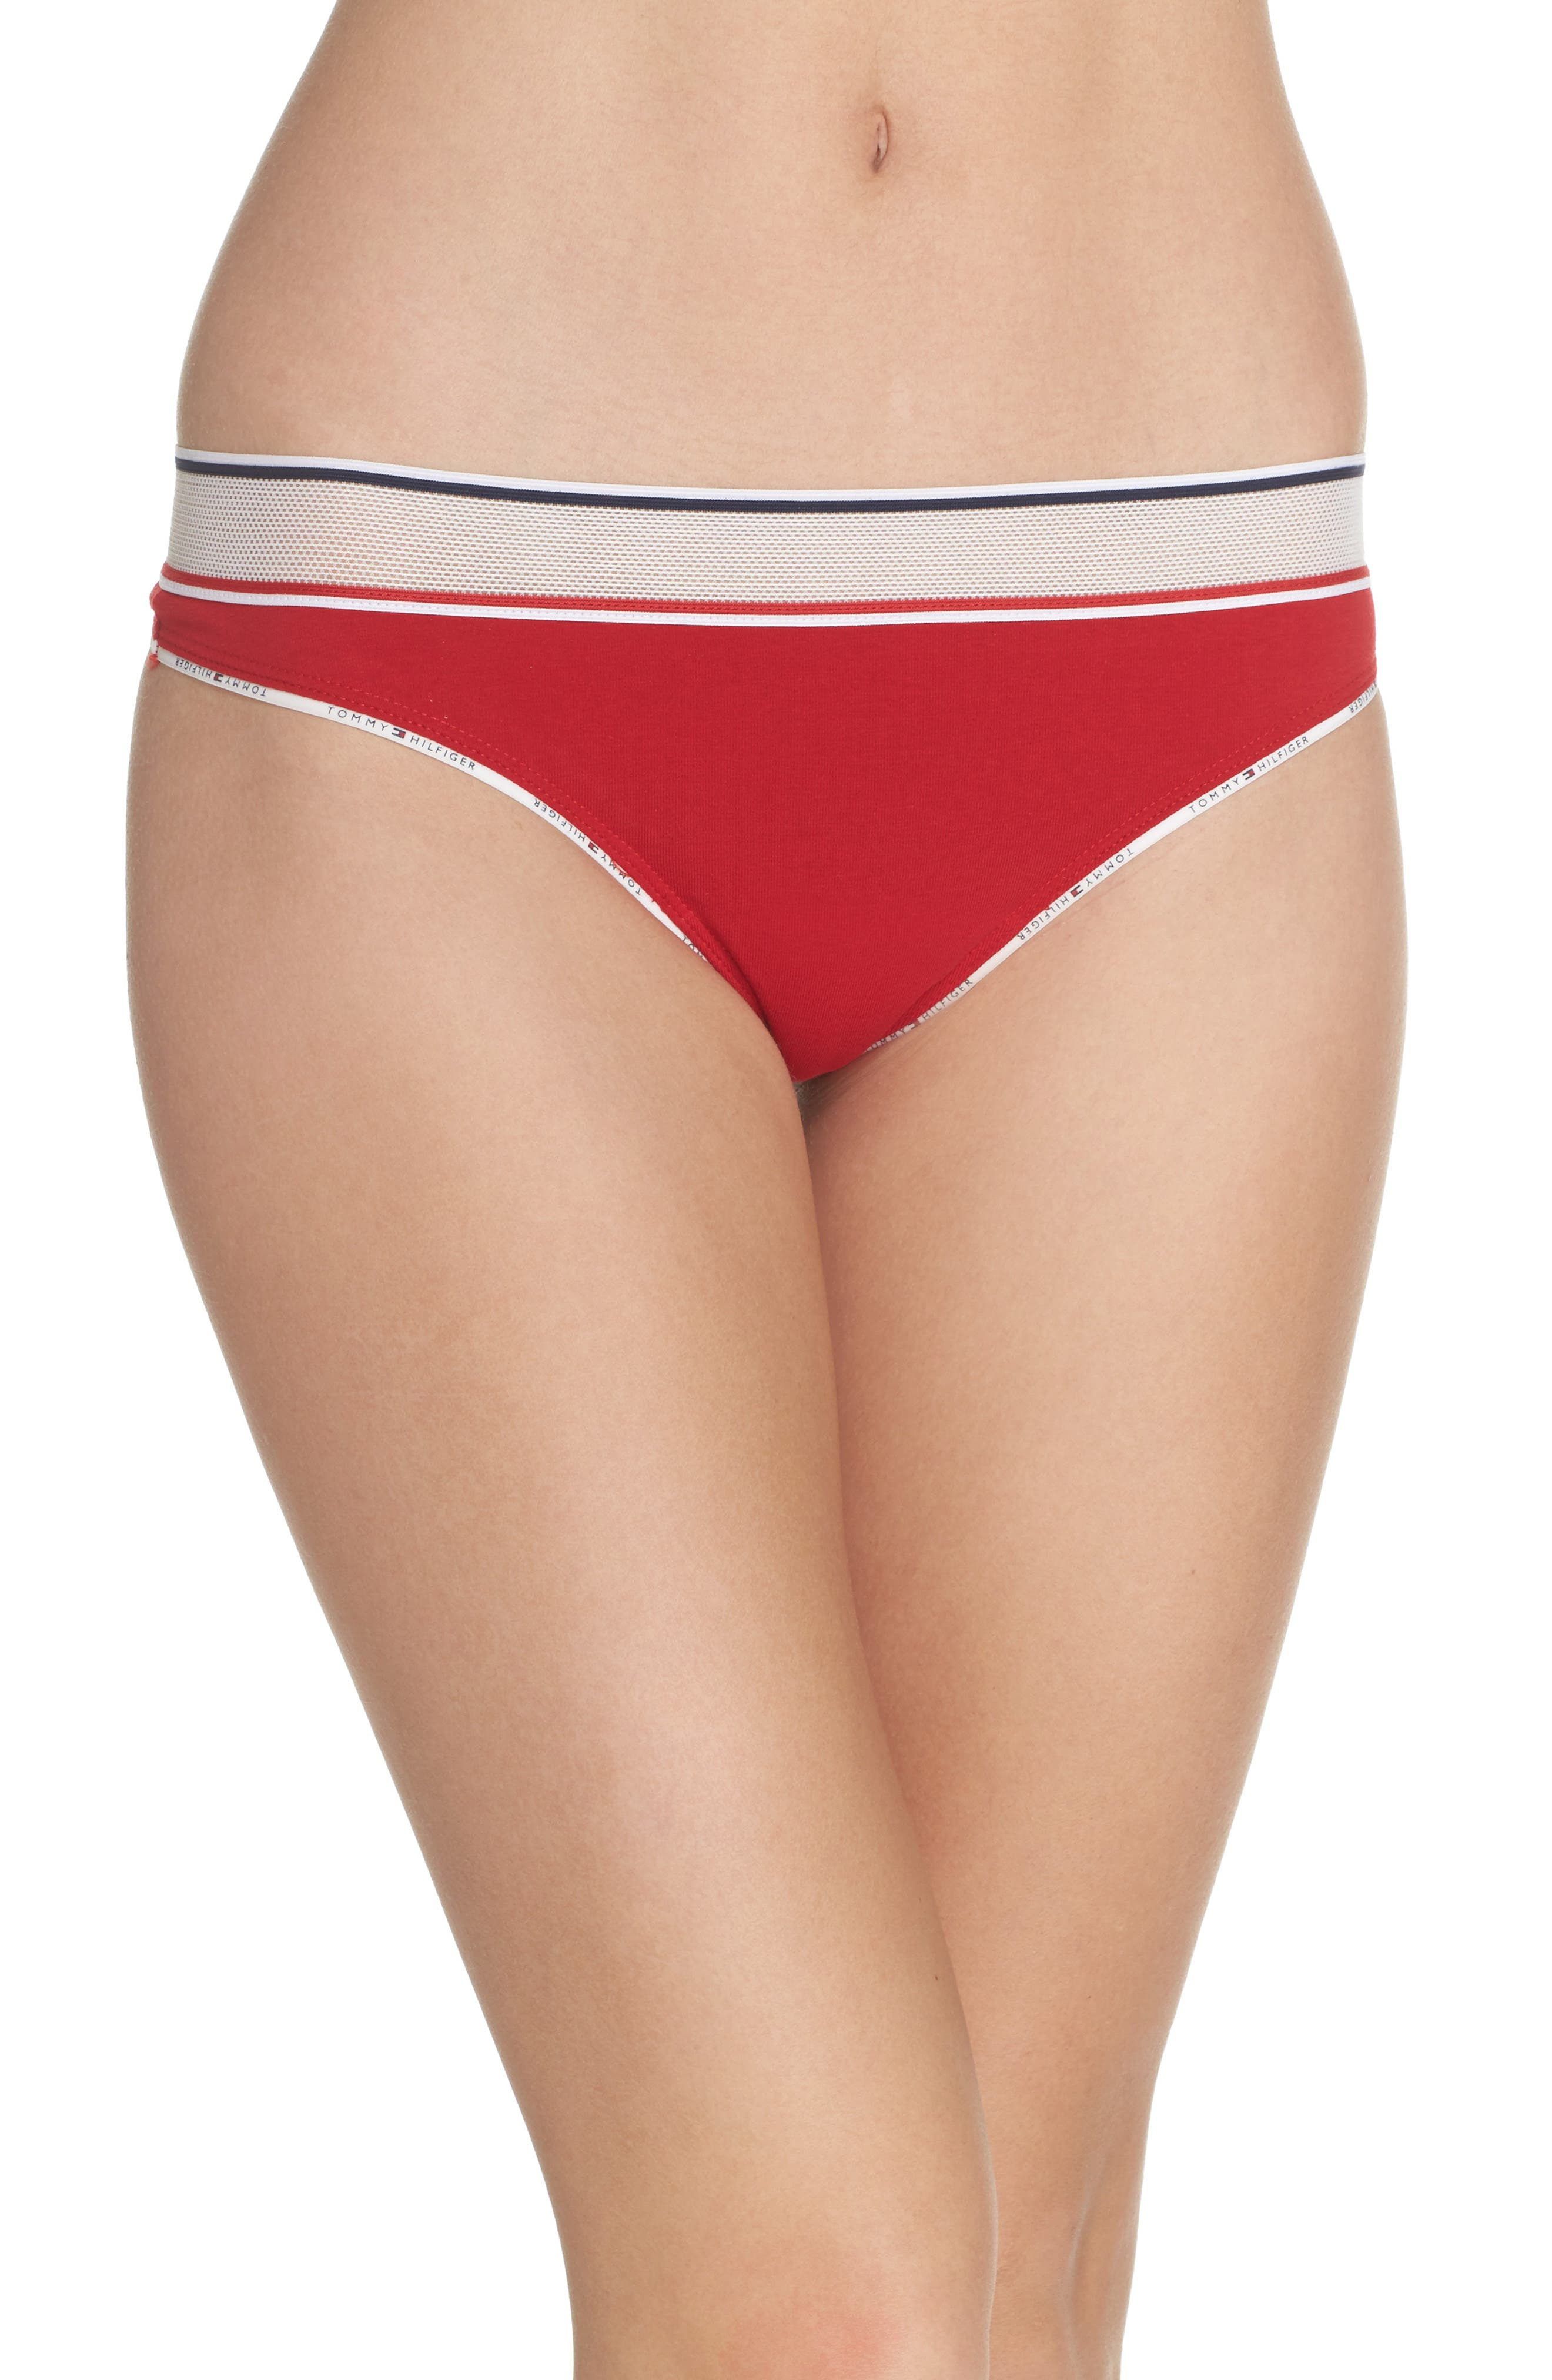 Alternate Image 1 Selected - Tommy Hilfiger Mesh Band Thong